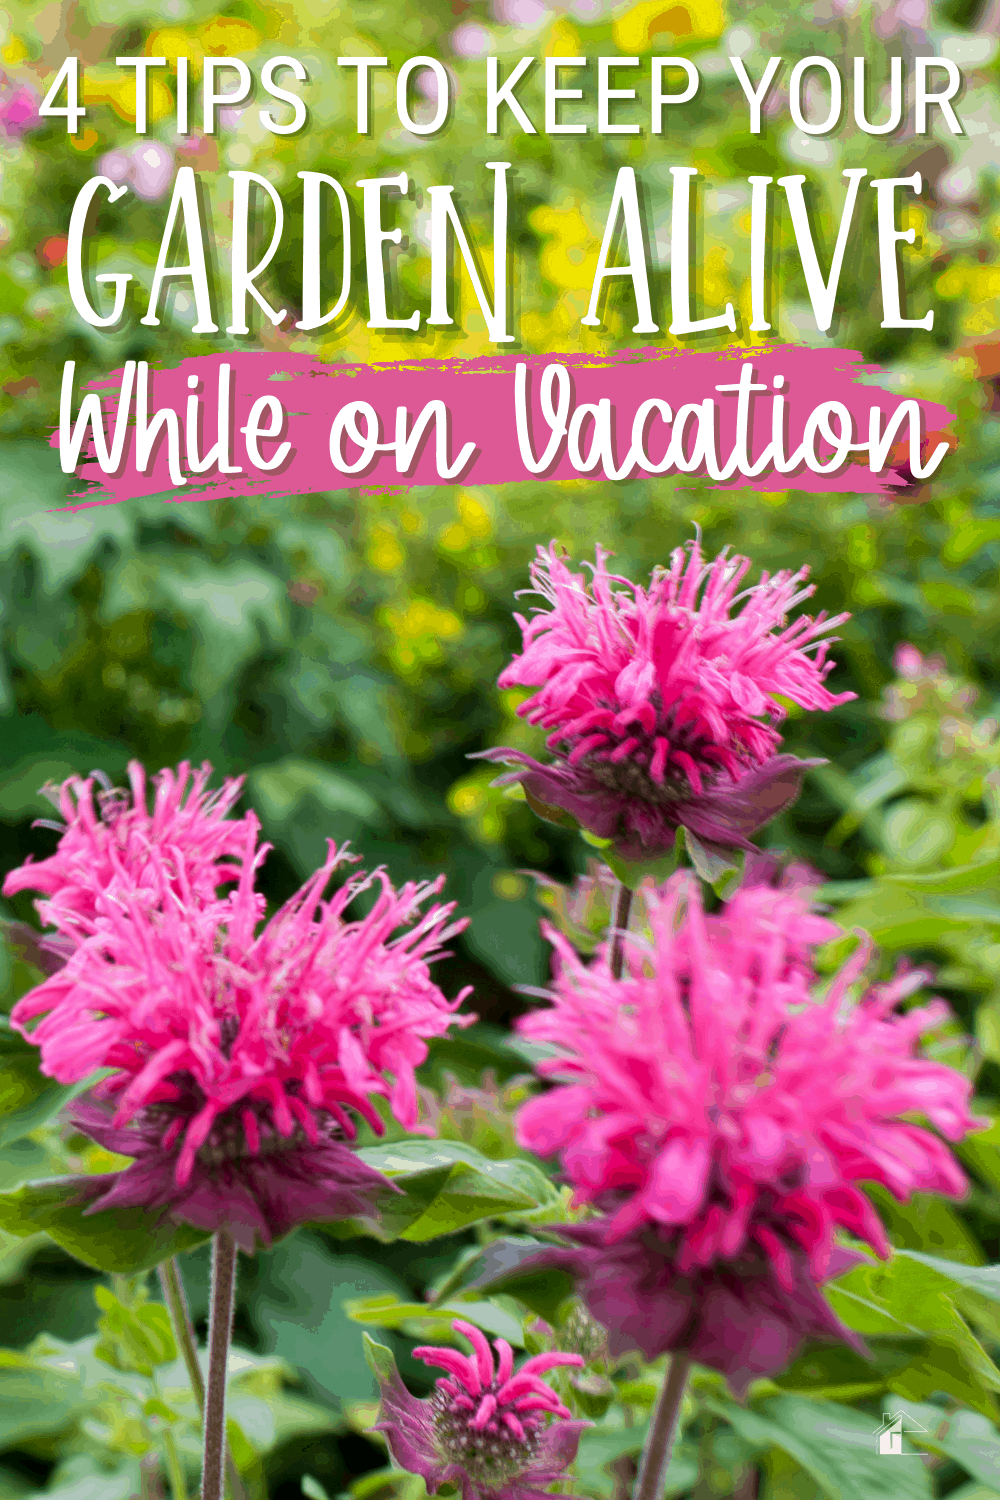 Are you worried about your garden this summer season? Learn four tips to keeping your garden alive while on vacation. You might be surprised to know. #gardening #homegarden #gardeningtips via @mystayathome